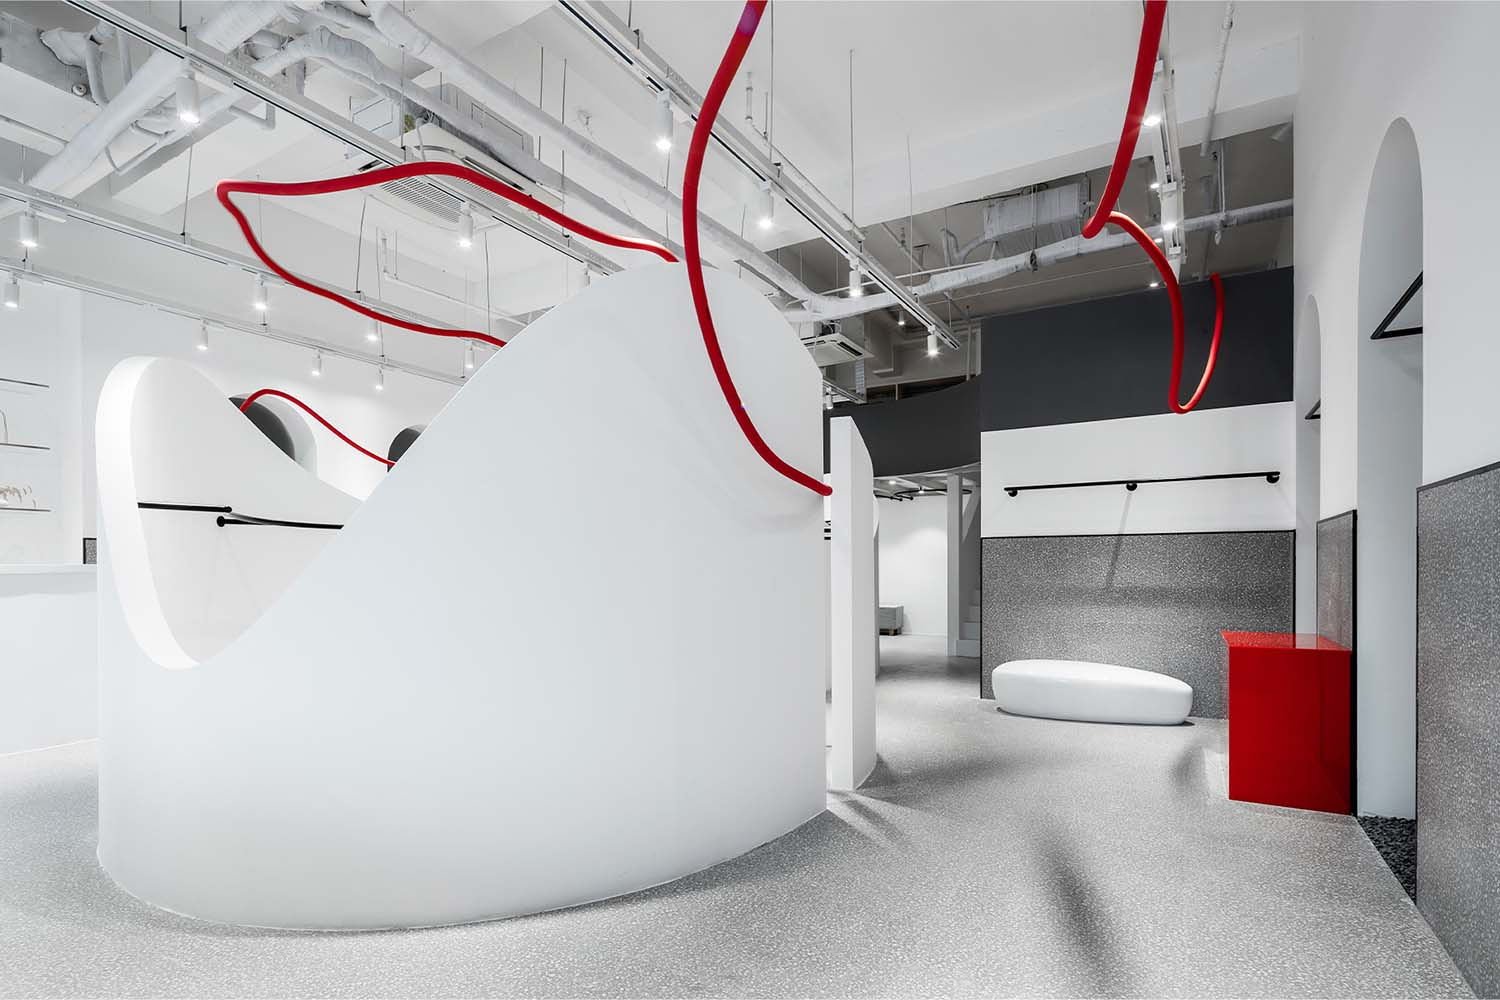 Showni Clothing Boutique by Nianwei Zhu; Winner in Interior Space and Exhibition Design Category, 2020—2021